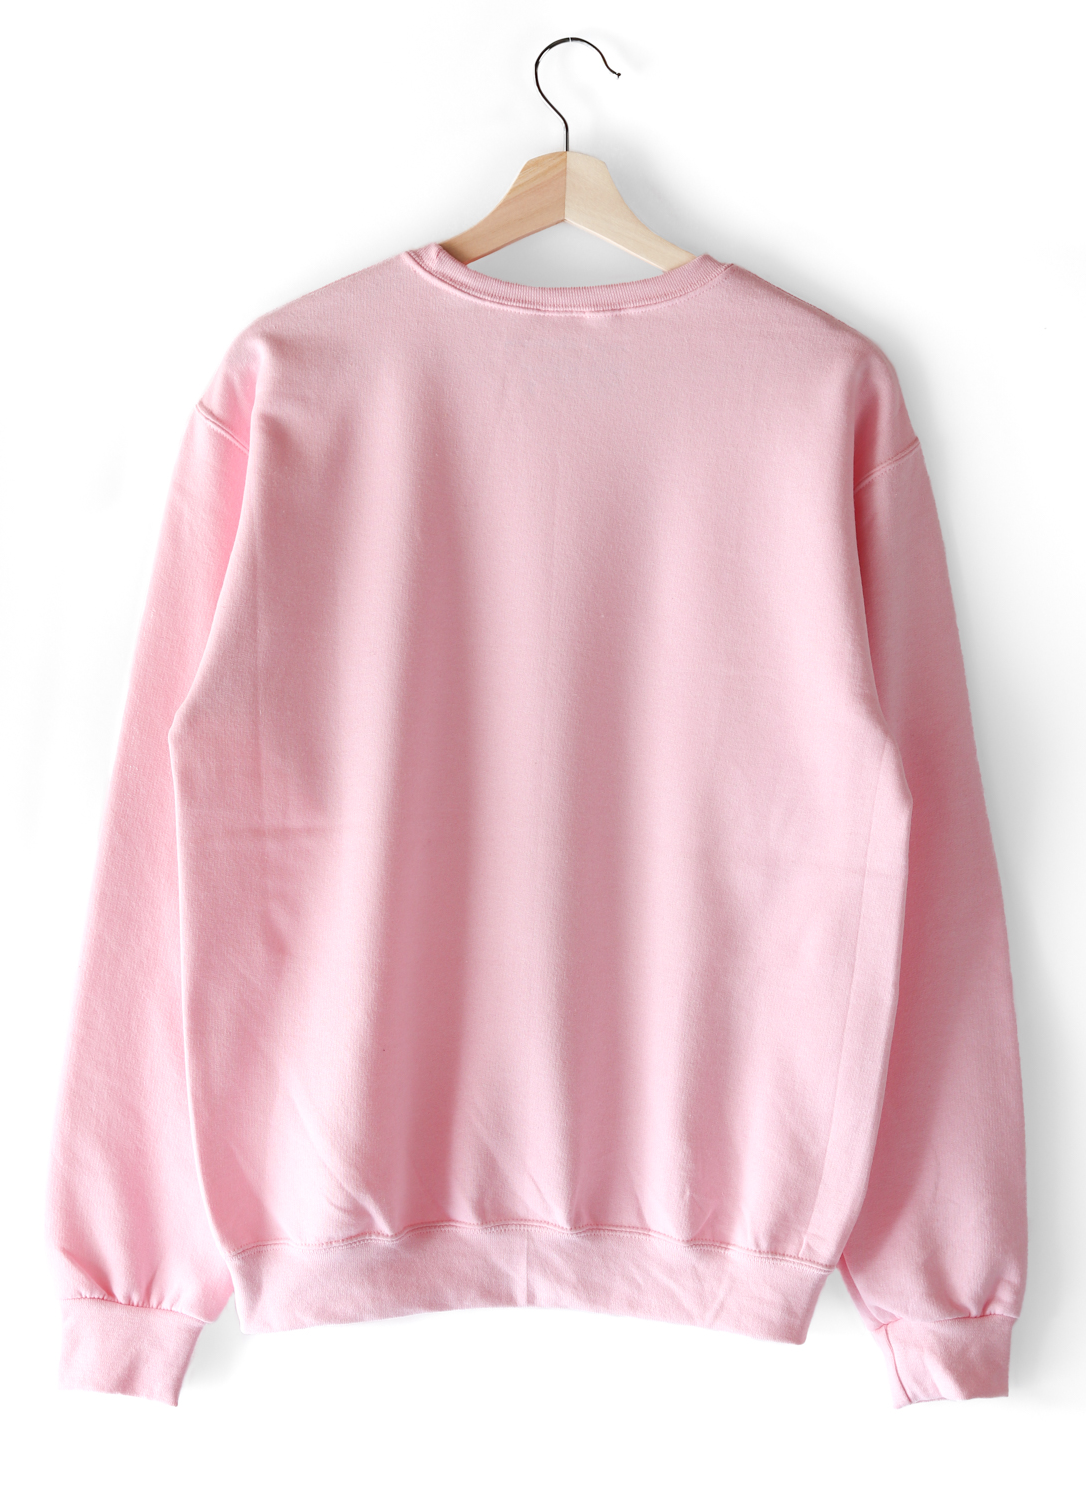 NYCT Clothing Sweatshirt - Light Pink